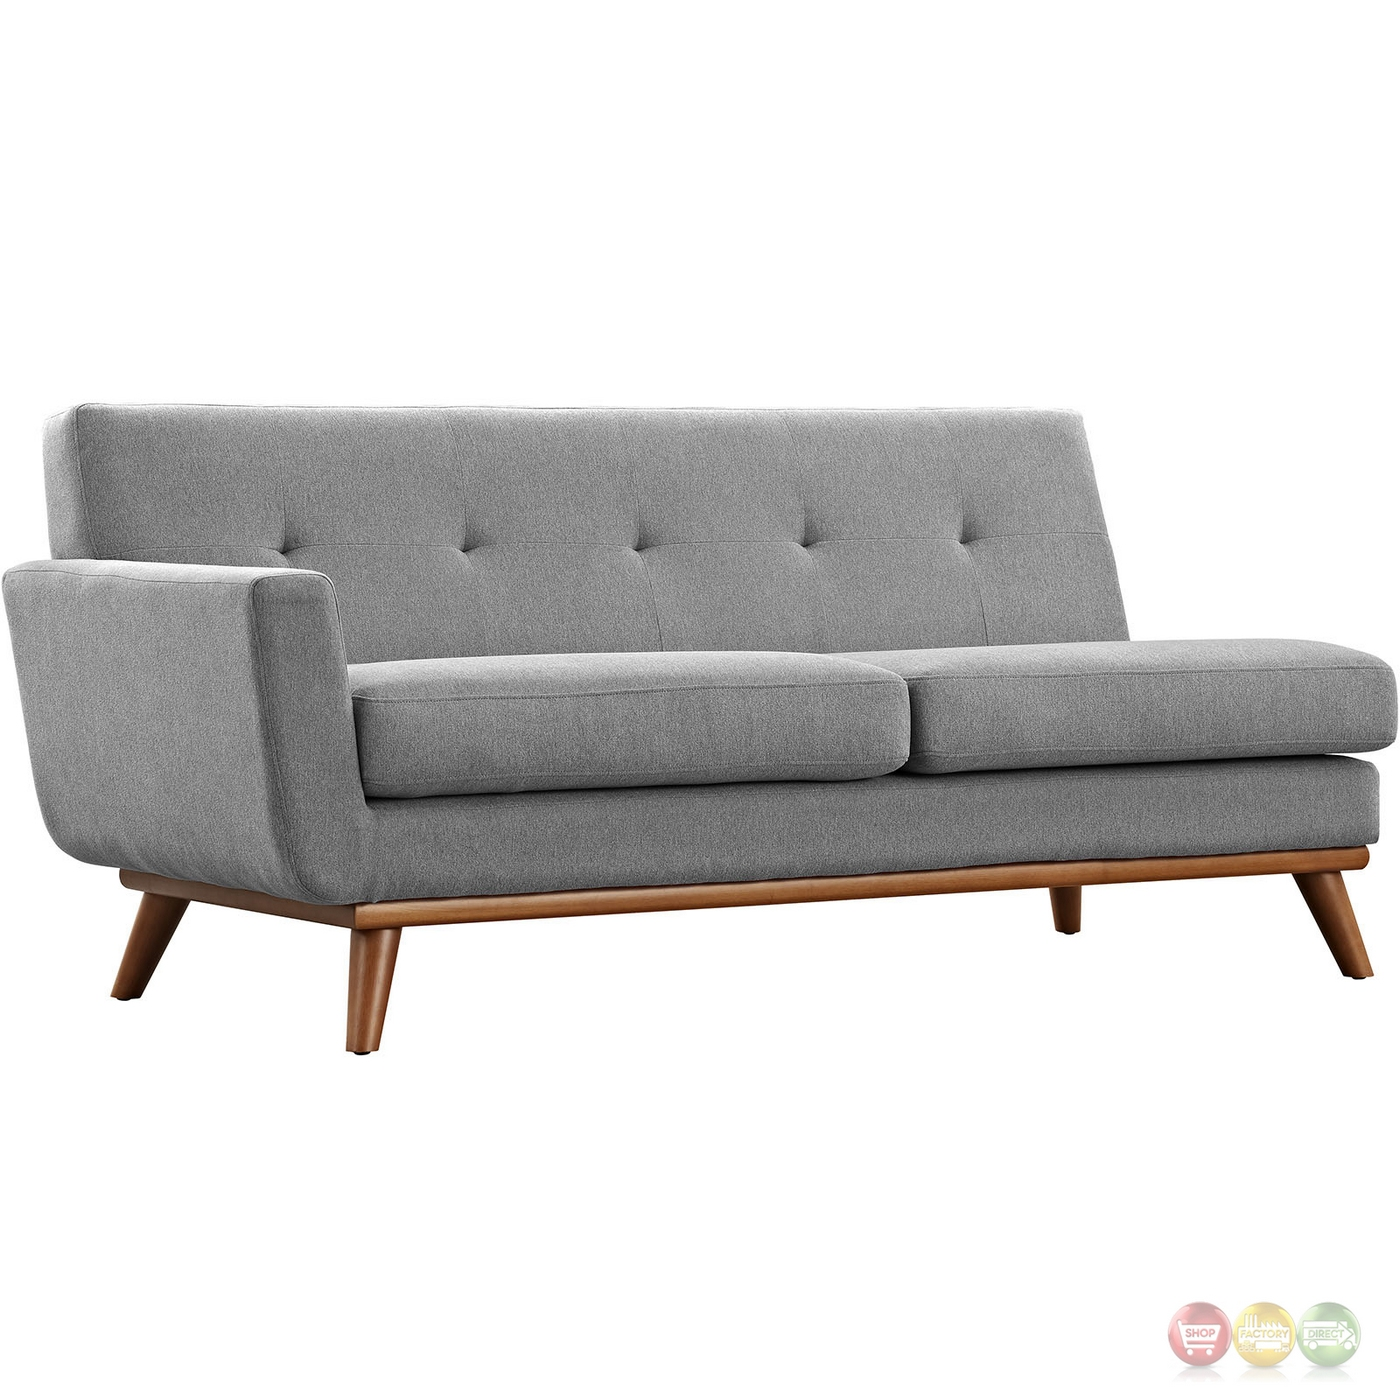 Mid Century Modern Engage Right Facing Chaise Sectional Sofa Expectation Gray